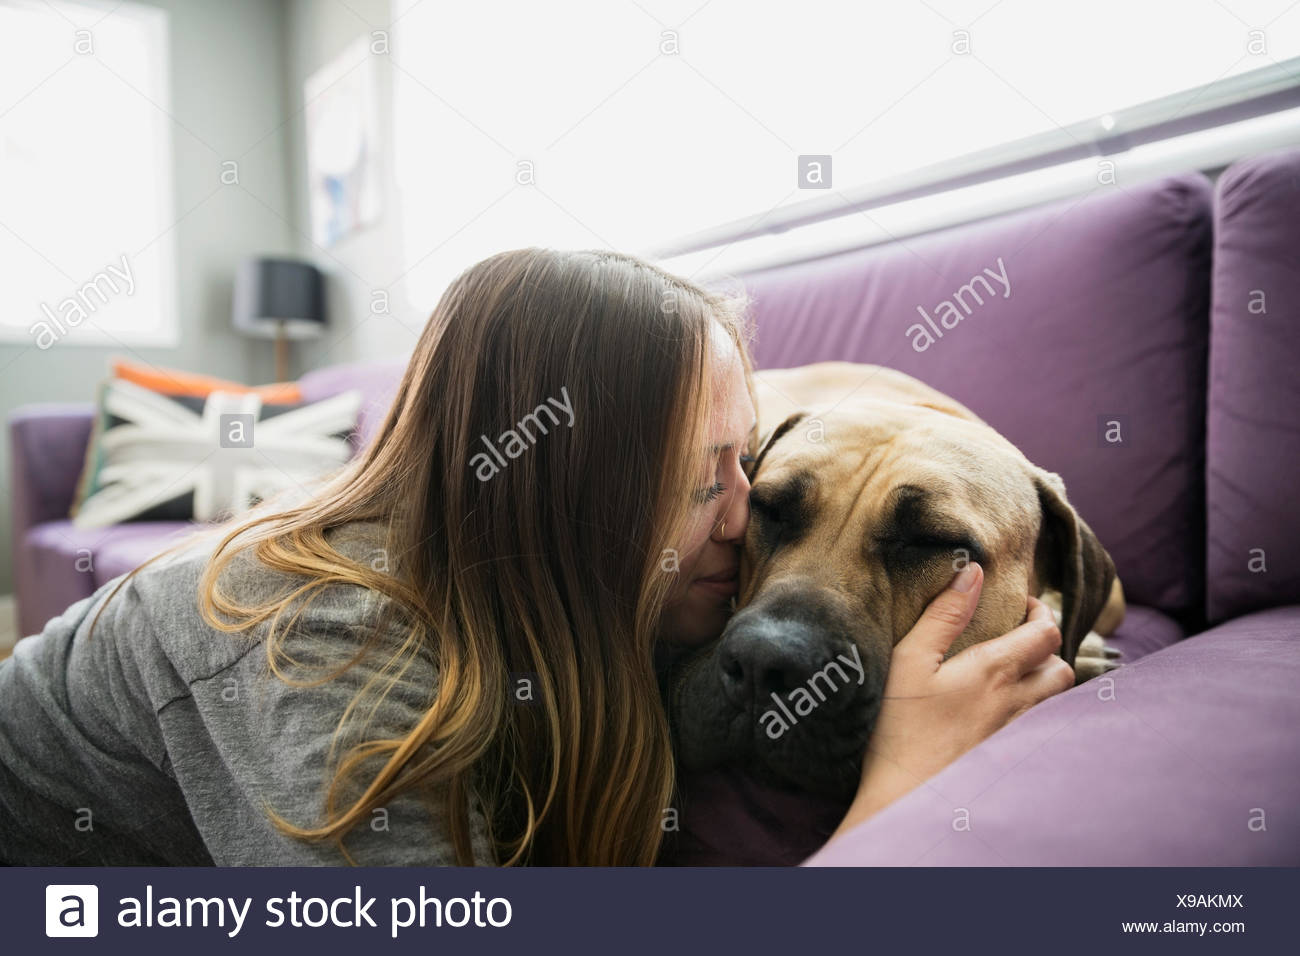 Woman kissing dog on living room sofa - Stock Image